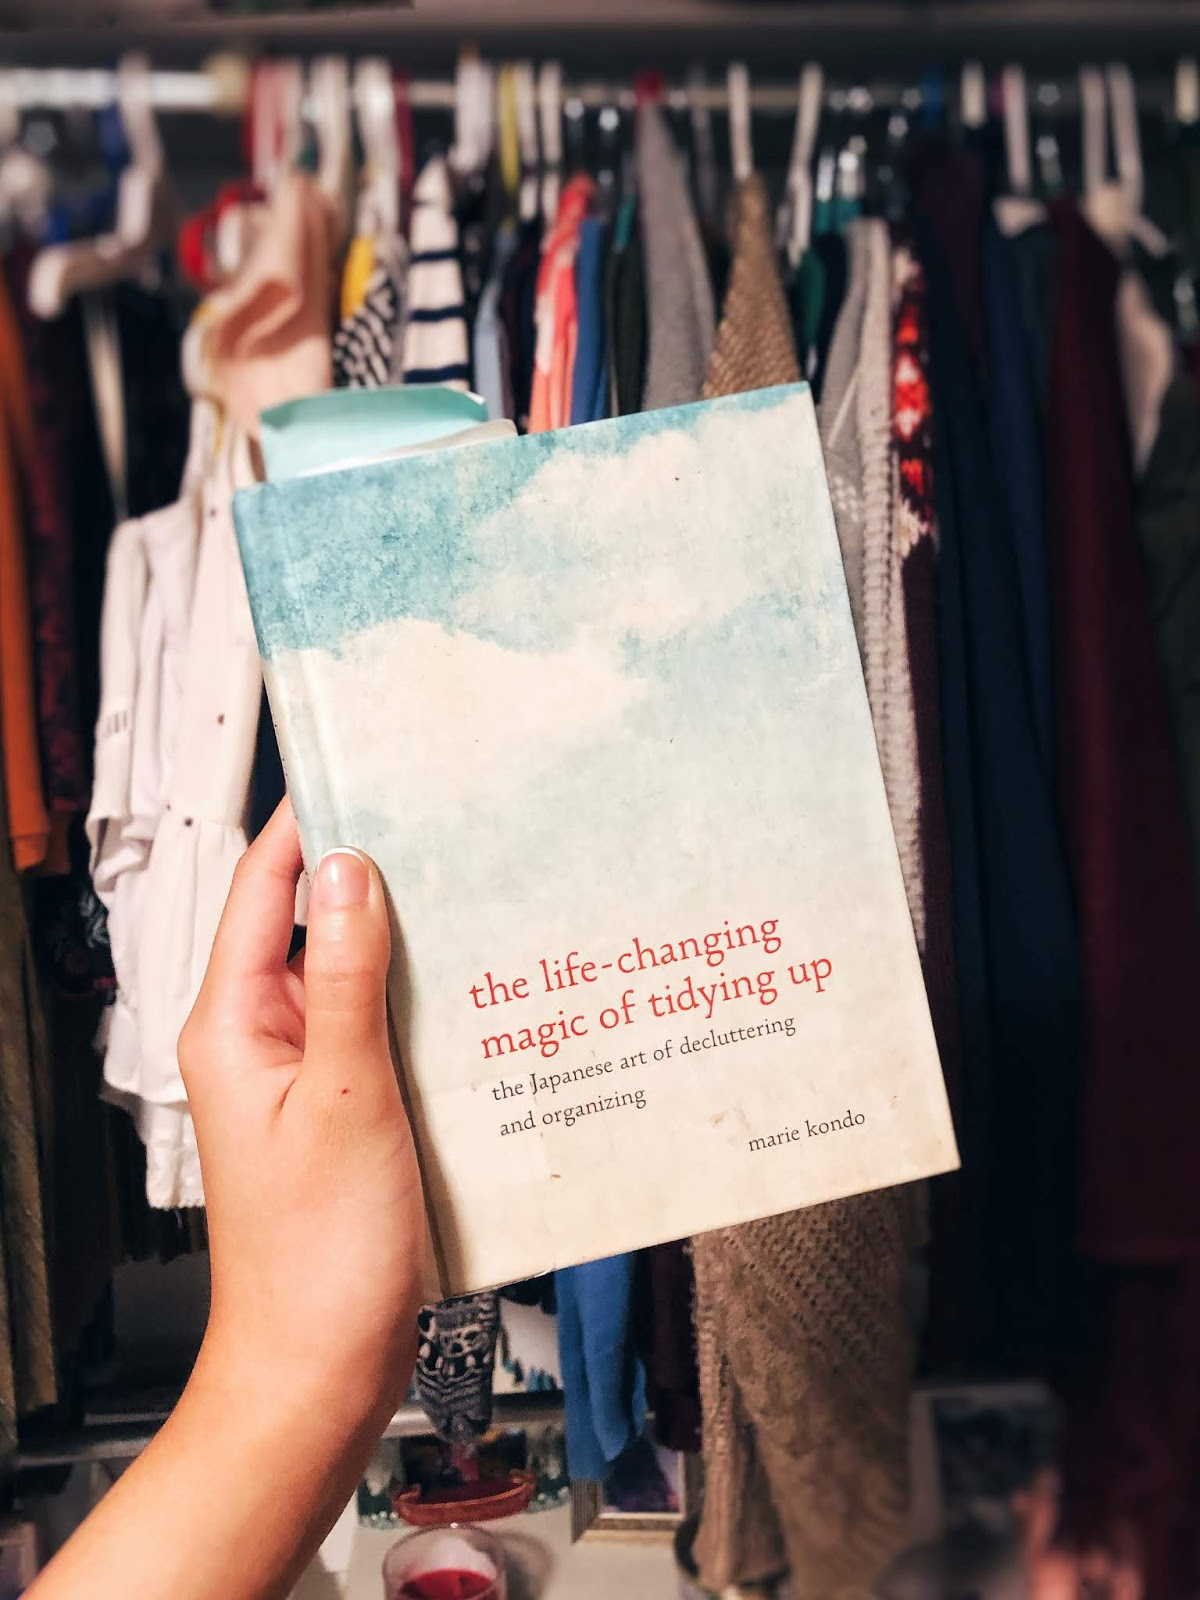 I Followed Marie Kondo's KonMari Method to Clean My Closet and This is What Happened